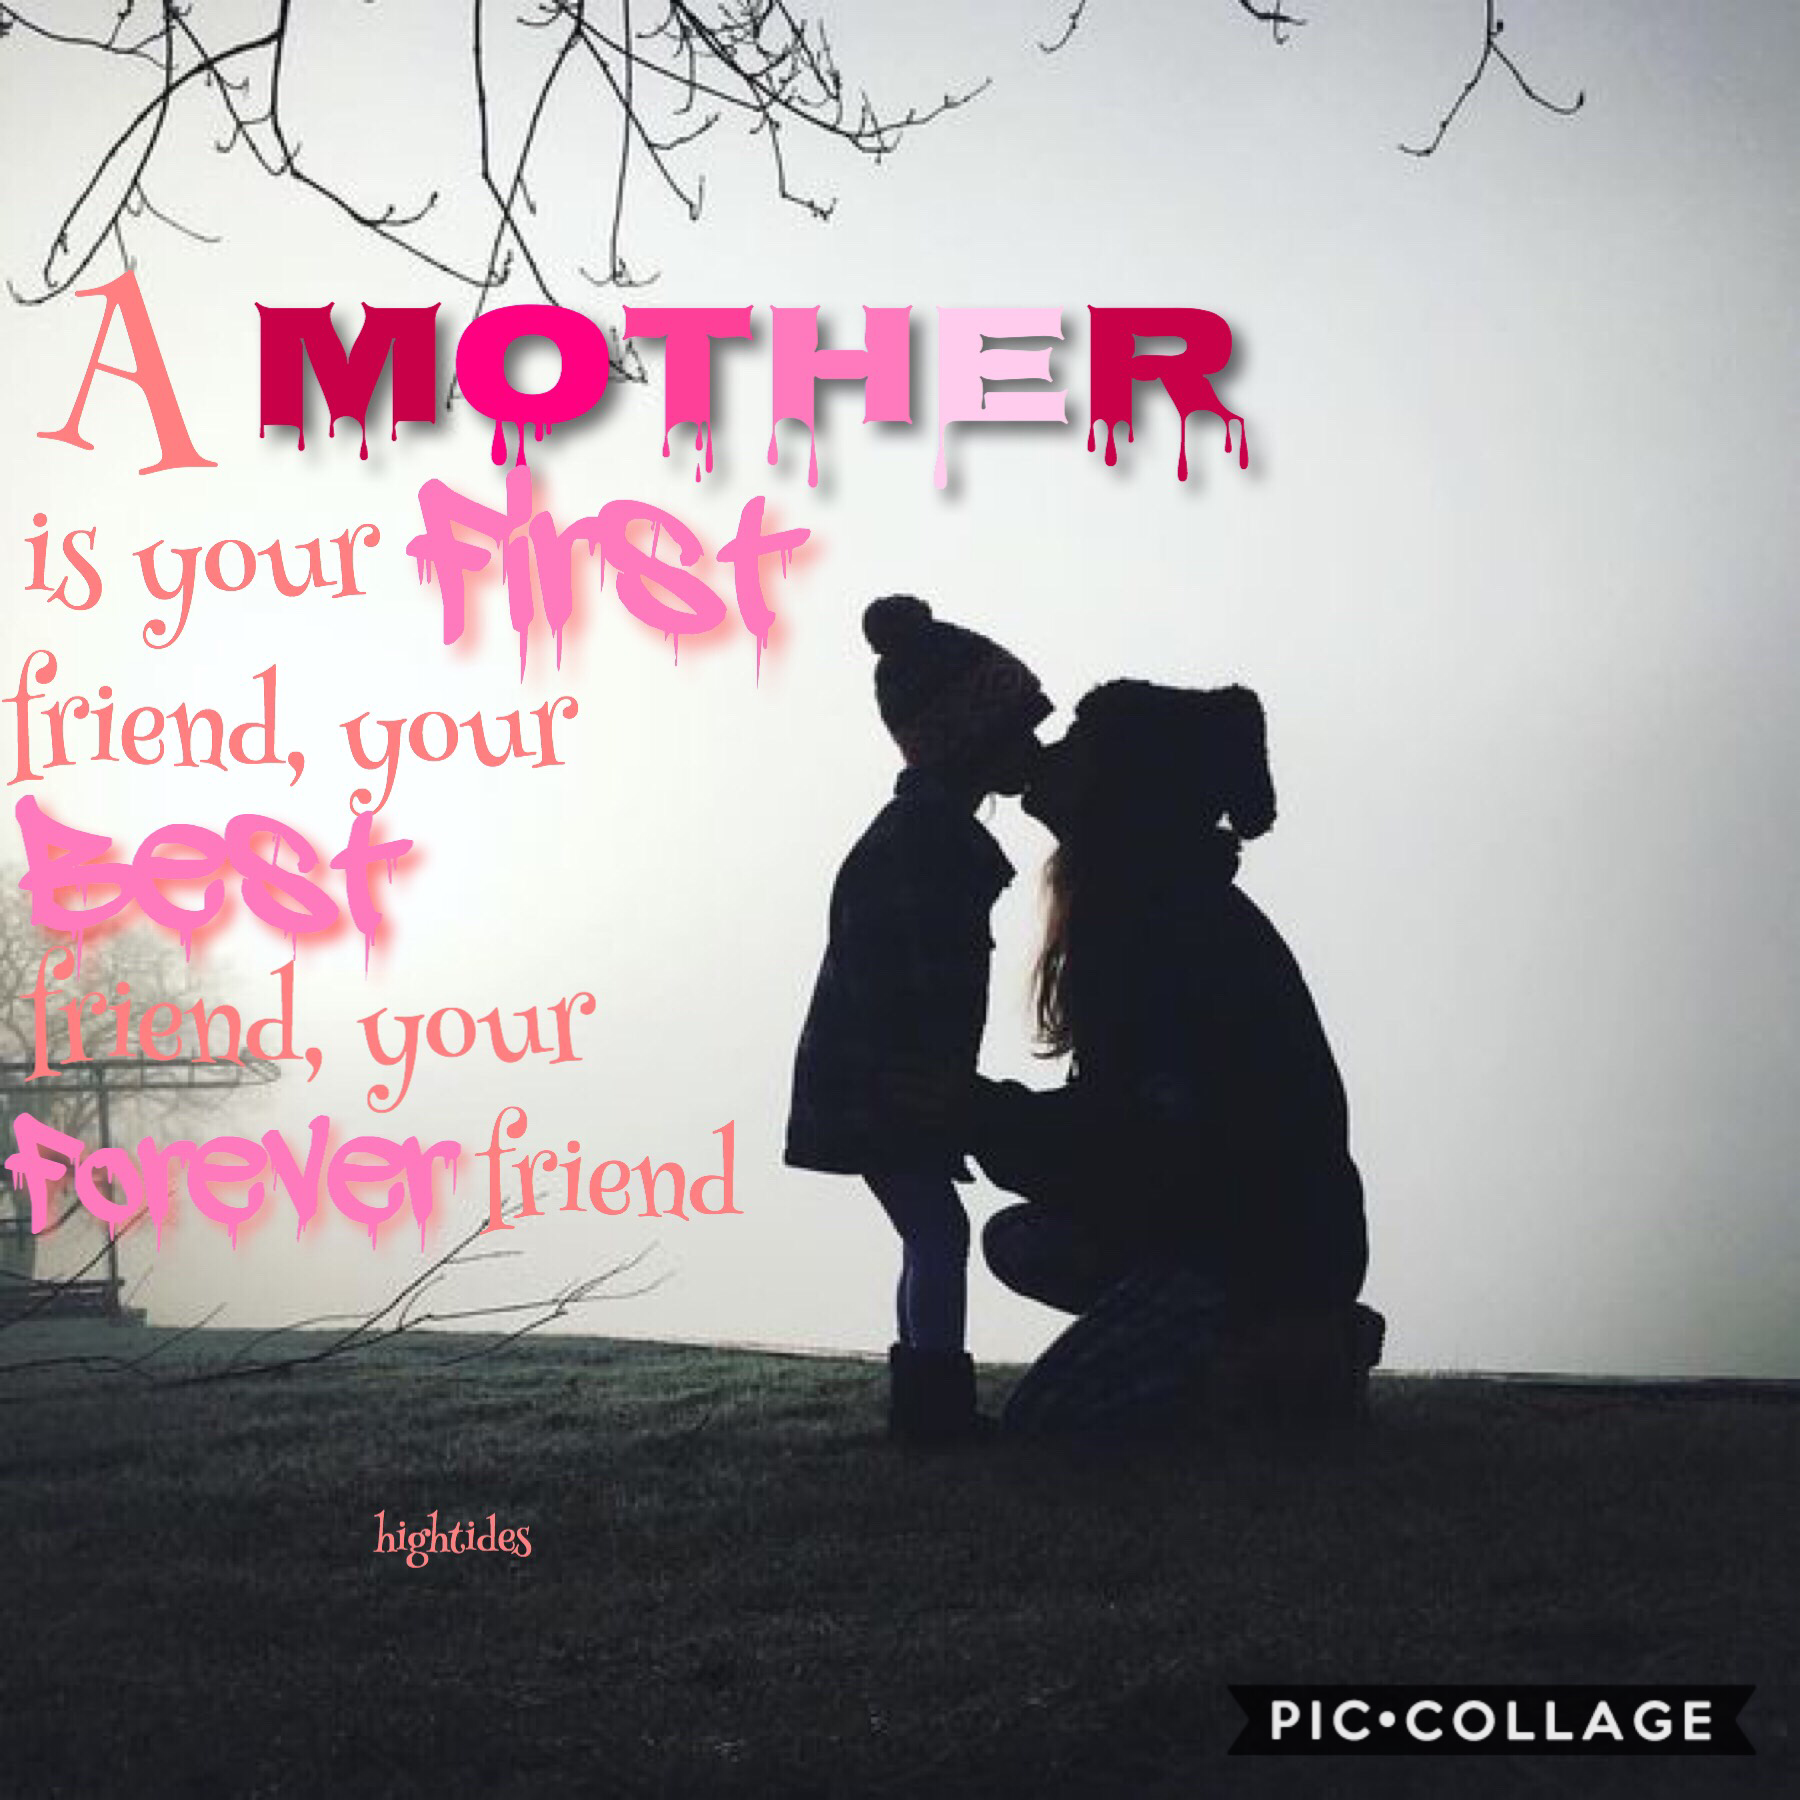 💕👩🏽🦱Happy Mother's Day👩🏽🦱💕